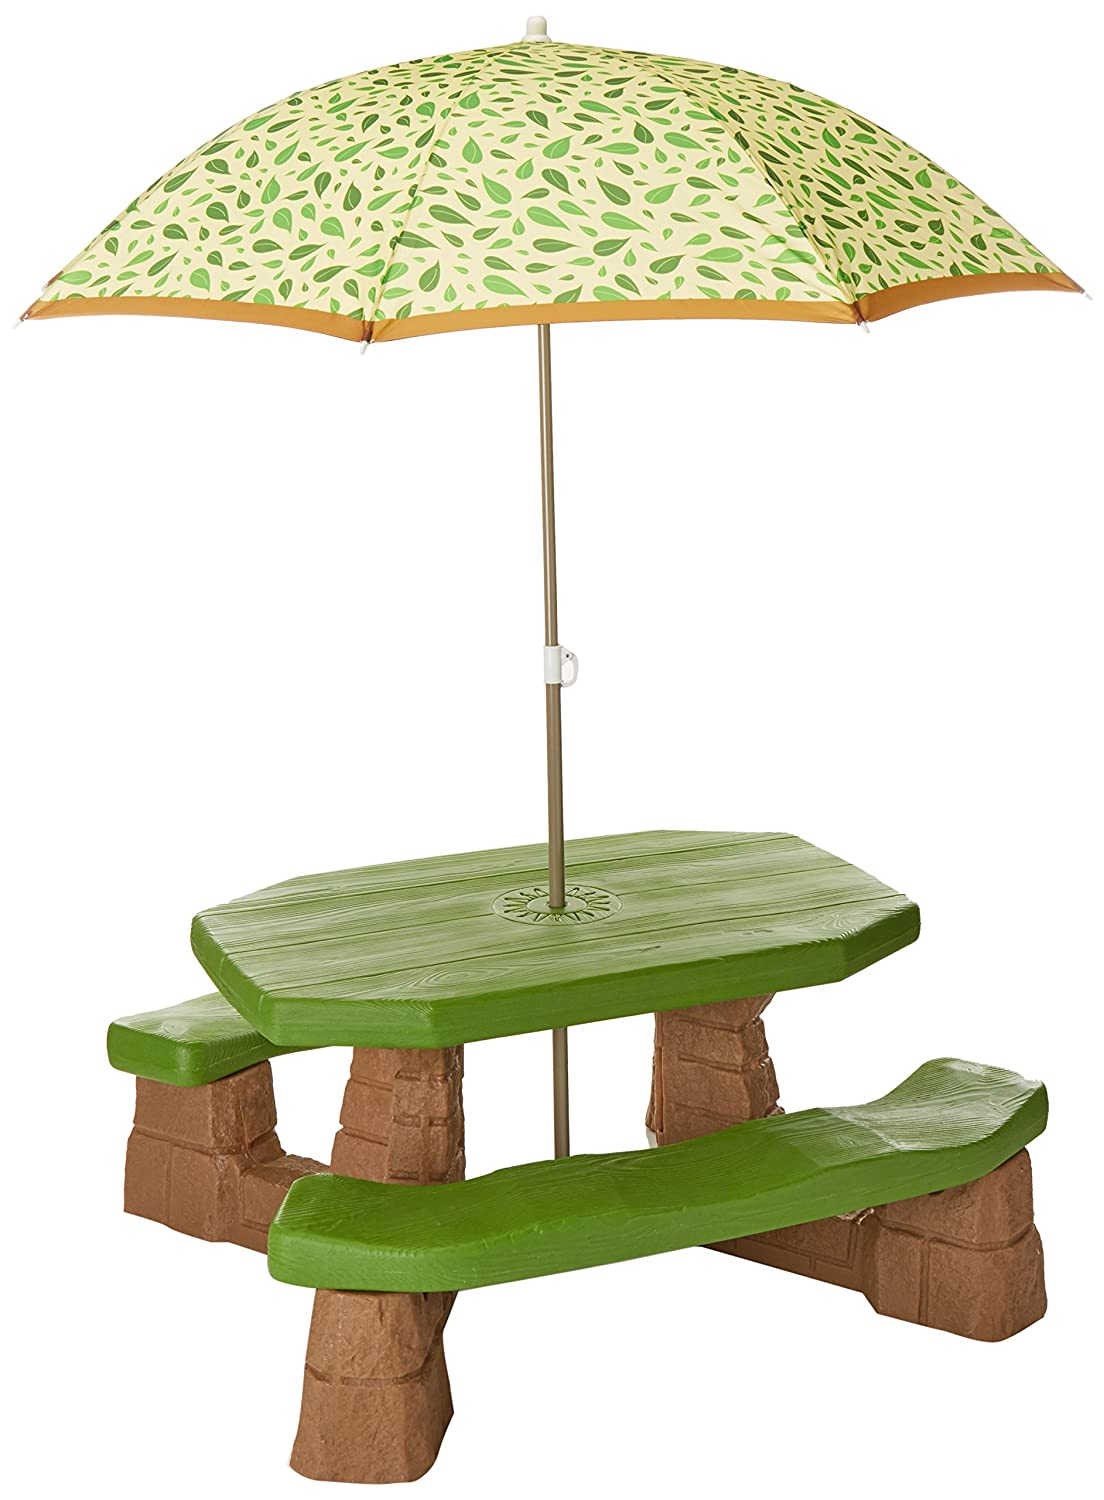 Amazon.com: Step2 Naturally Playful Picnic Table with Umbrella: Toys & Games